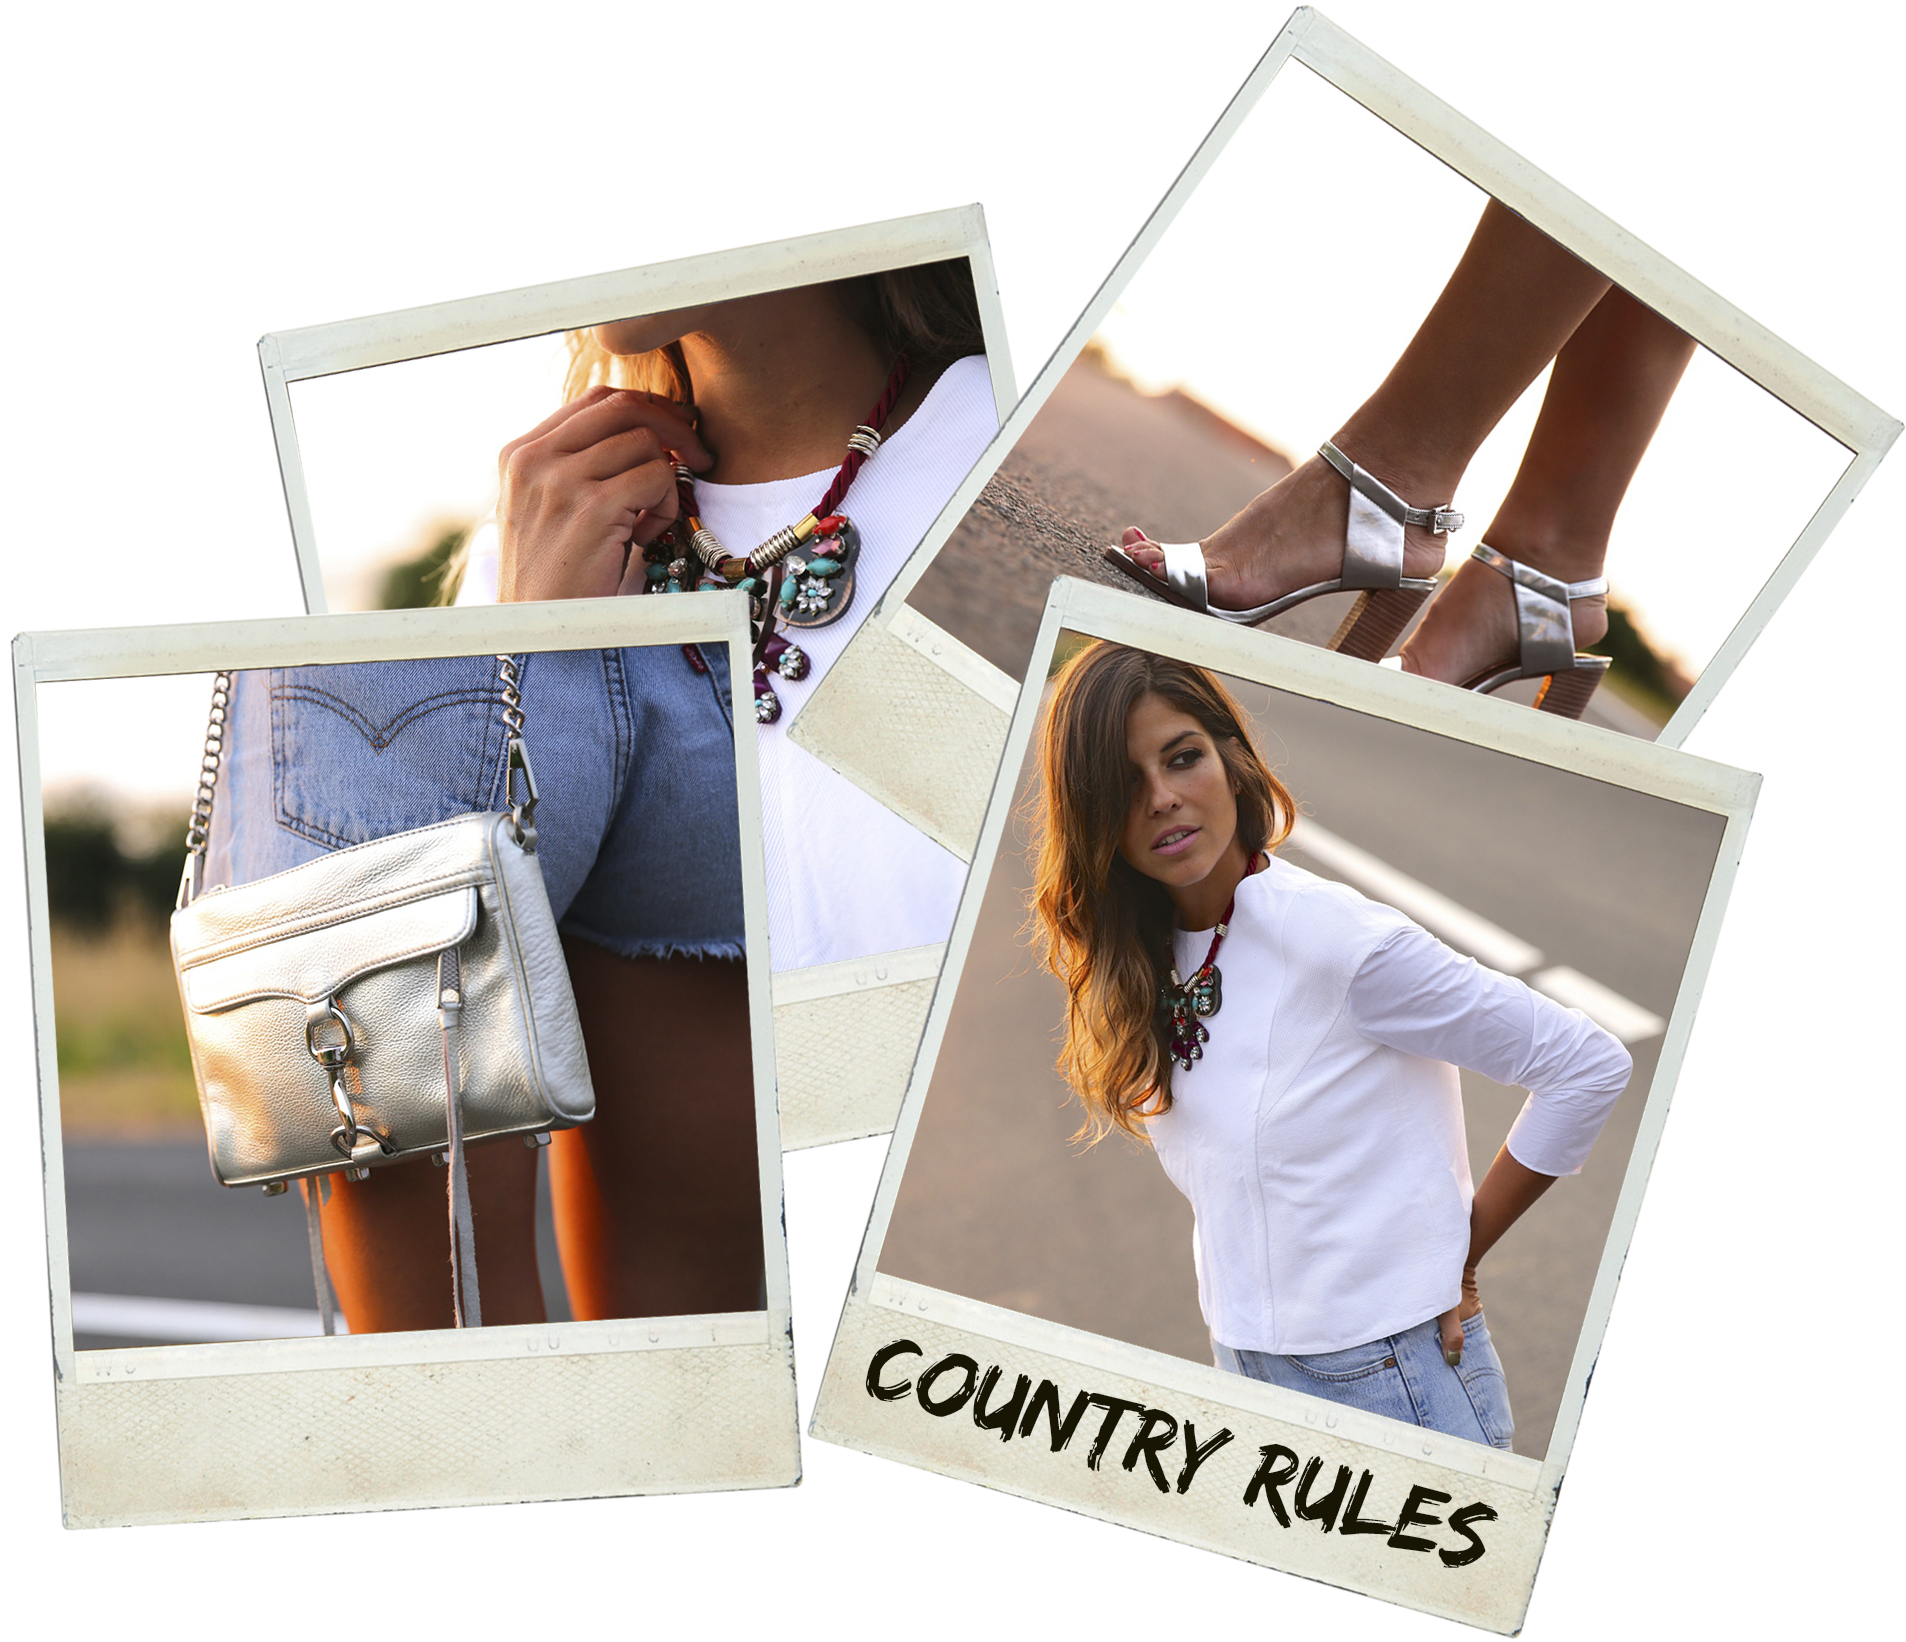 trendy_taste-look-outfit-street_style-ootd-blog-blogger-fashion_spain-moda_españa-coach-silver_sandals-sandalias_plata-white_top-top_blanco-levi's-denim_shorts-shorts_vaqueros-polaroid